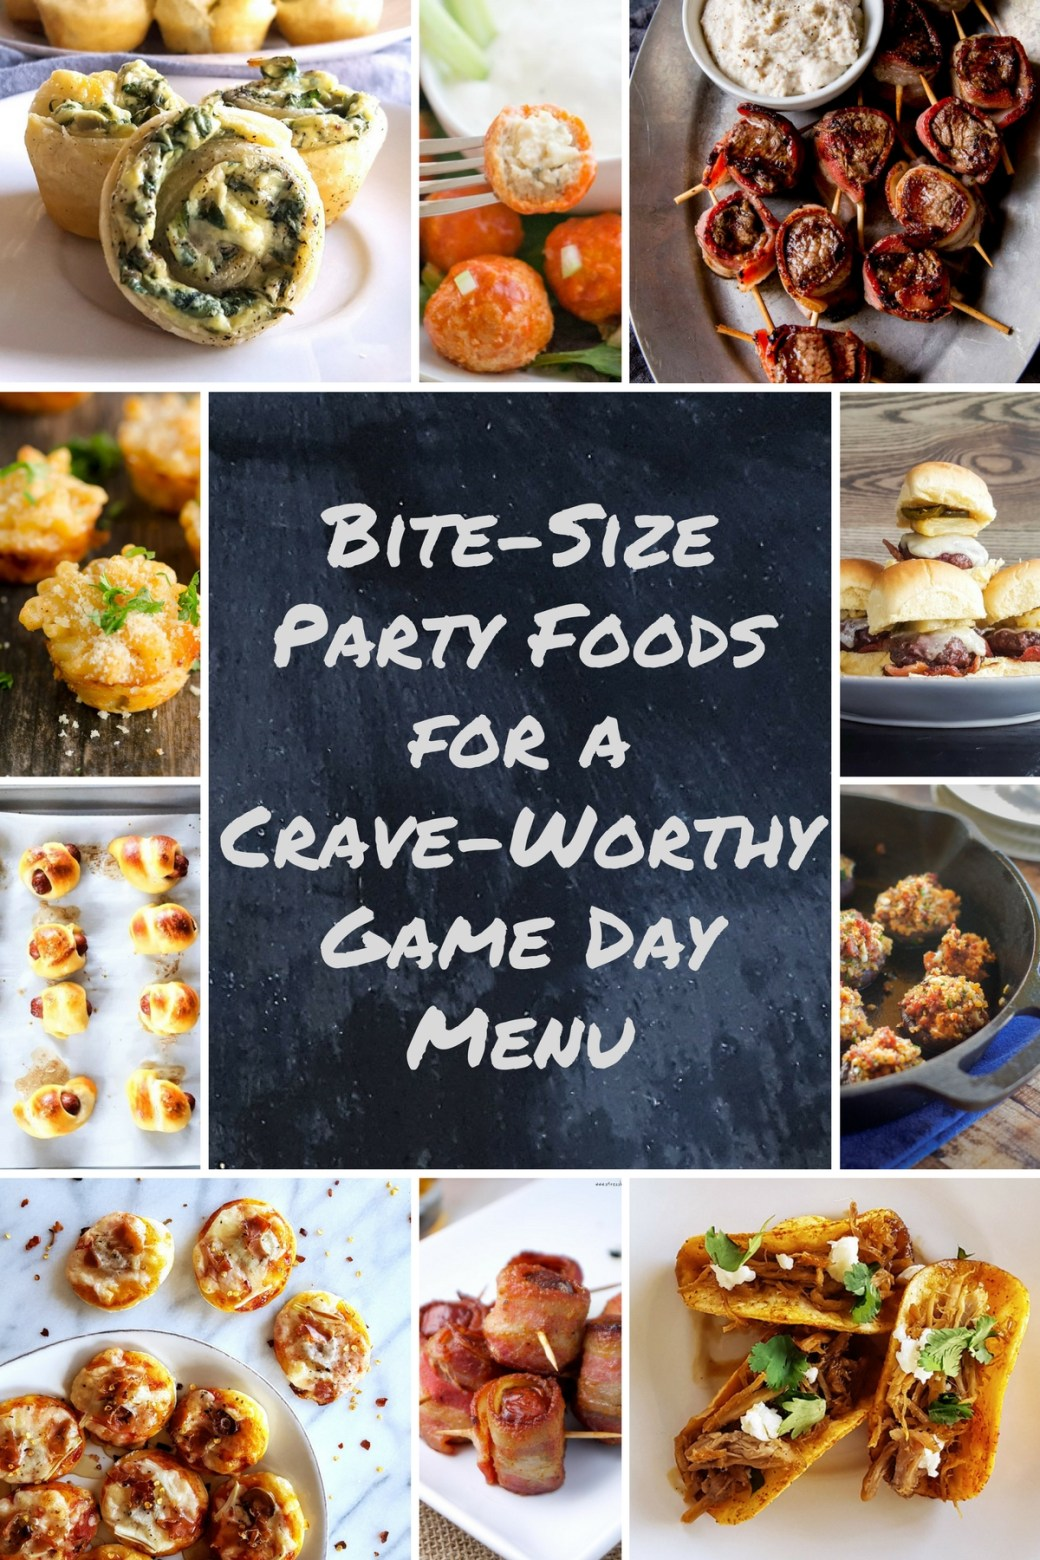 Bite-Size Party Foods for a Crave-Worthy Game Day Menu | FeastInThyme.com #superbowl #gameday #appetizers #party